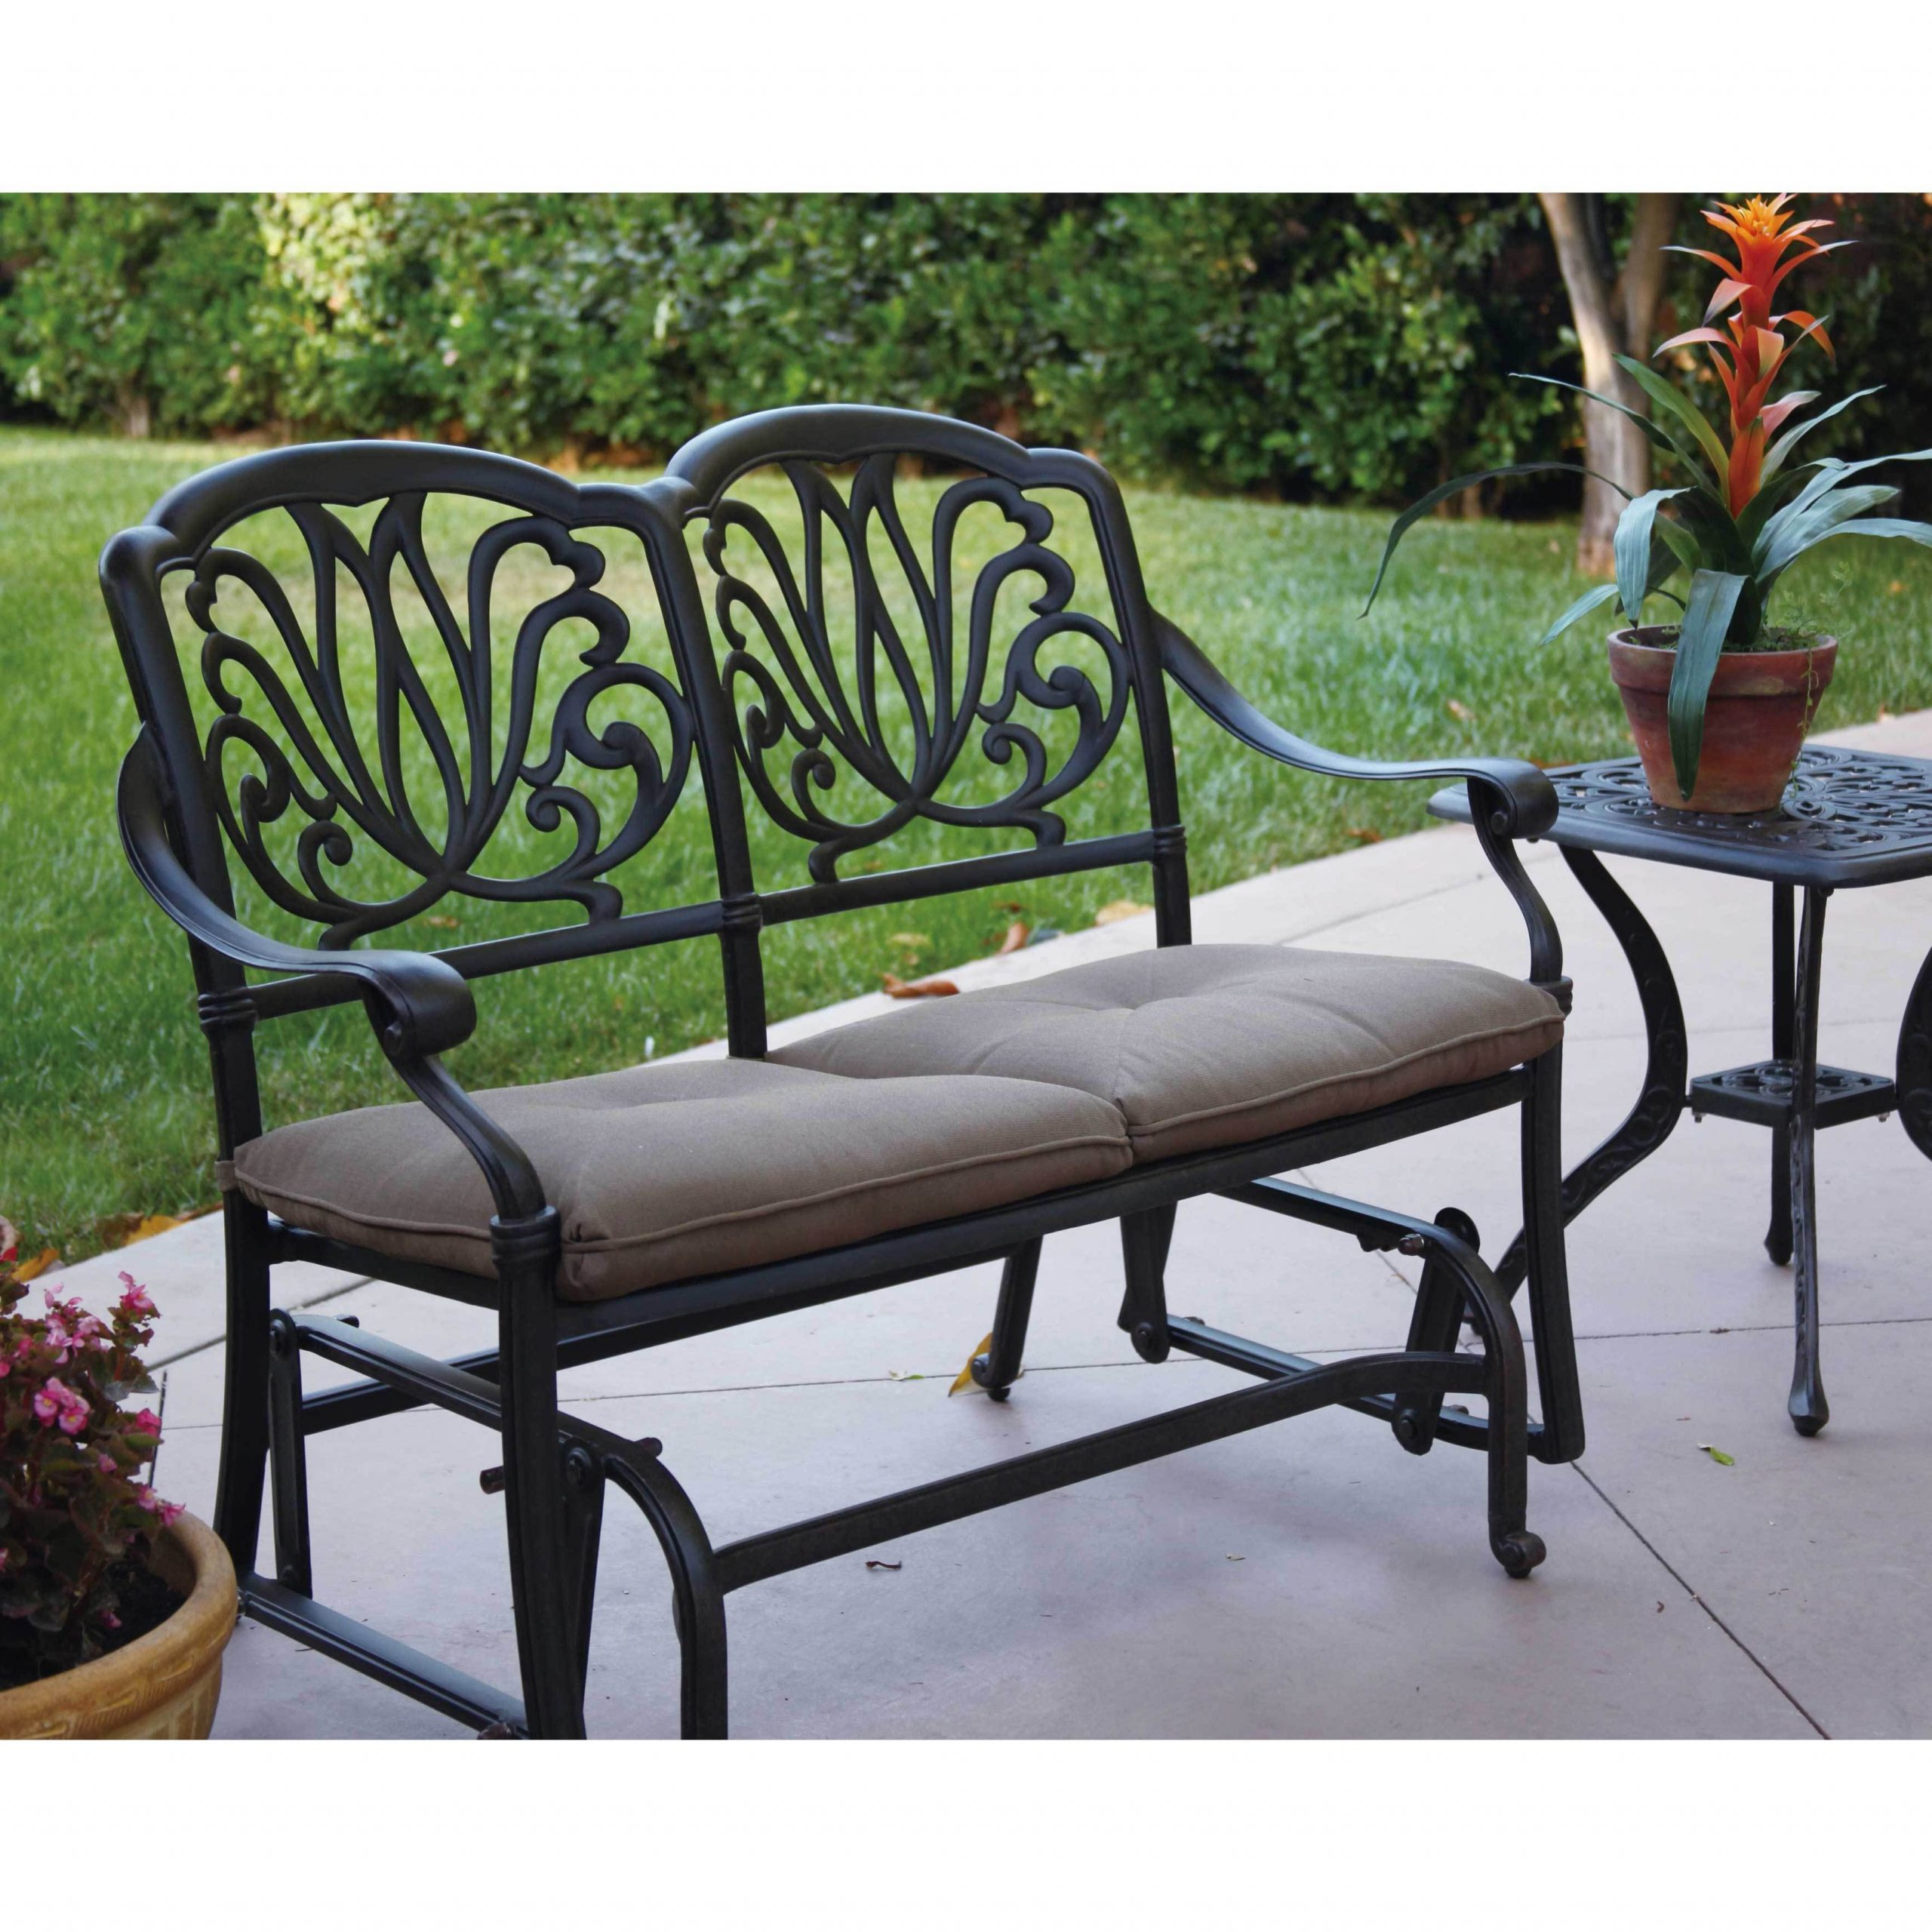 Havenside Home Avalon Cast Aluminum Glider Bench With Seat Cushion For Best And Newest Glider Benches With Cushion (View 20 of 30)